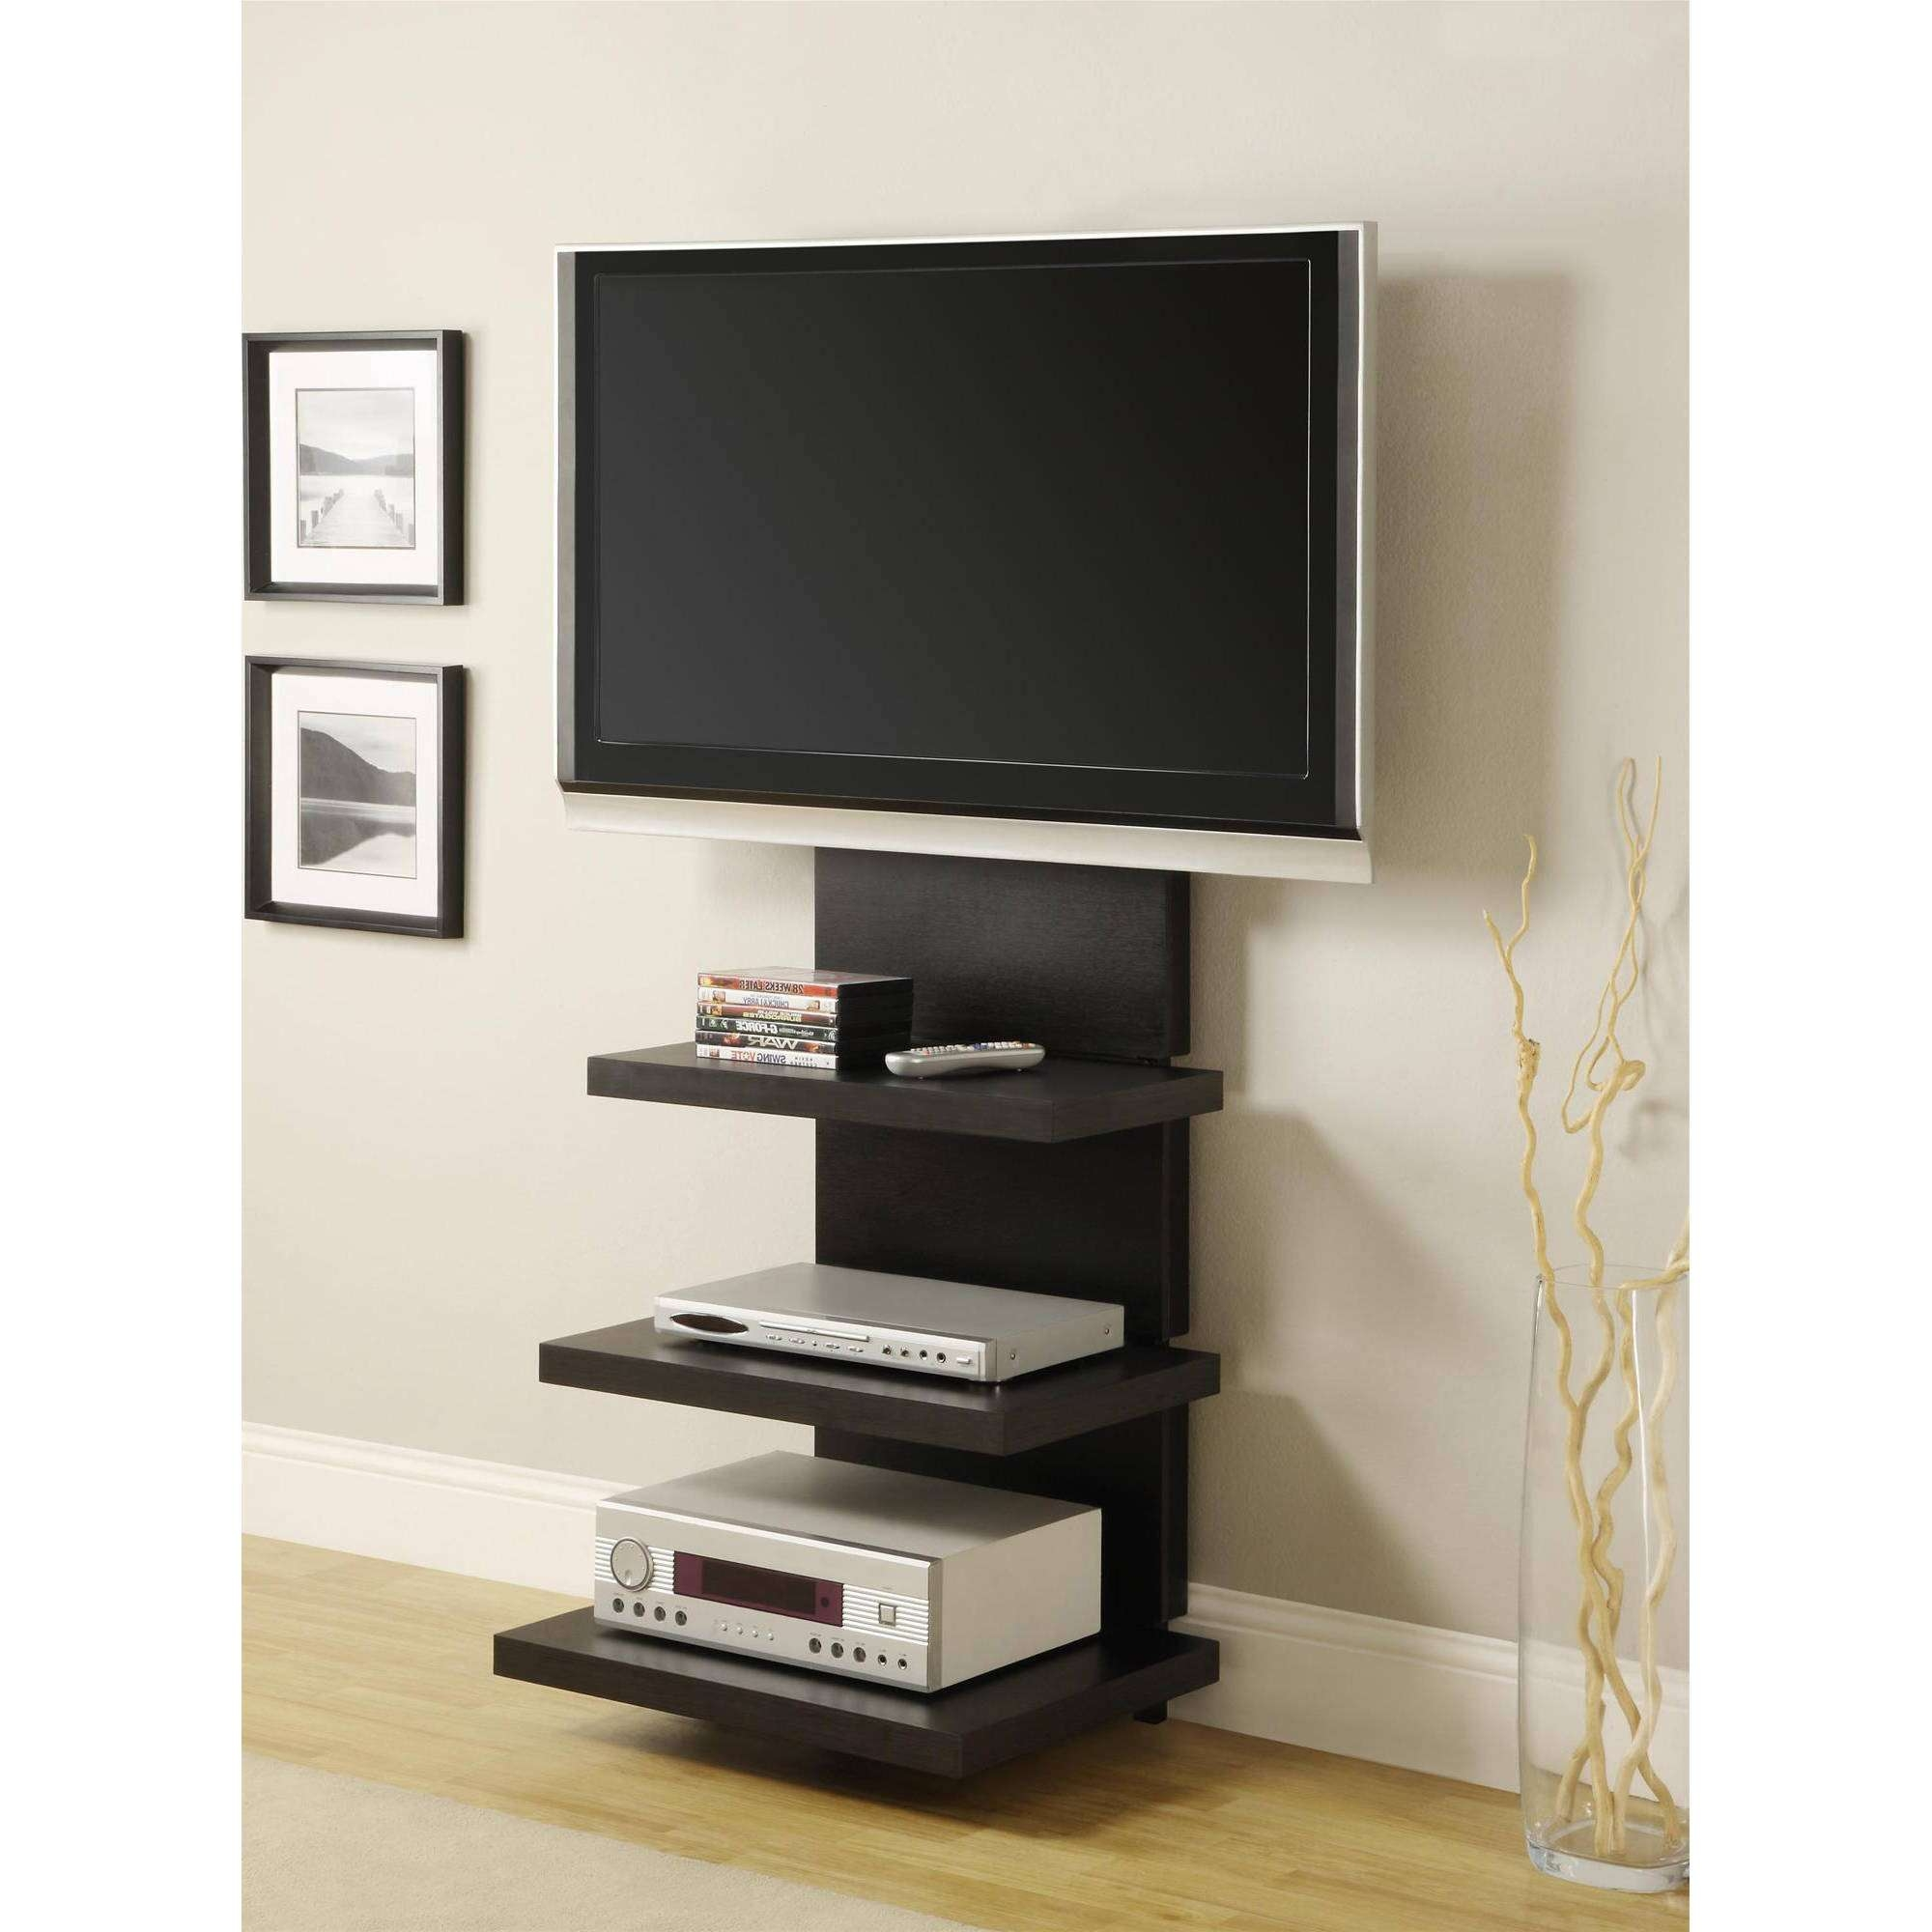 Ameriwood Home Elevation Altramount Tv Stand For Tvs Up To 60 Intended For Very Tall Tv Stands (View 1 of 15)